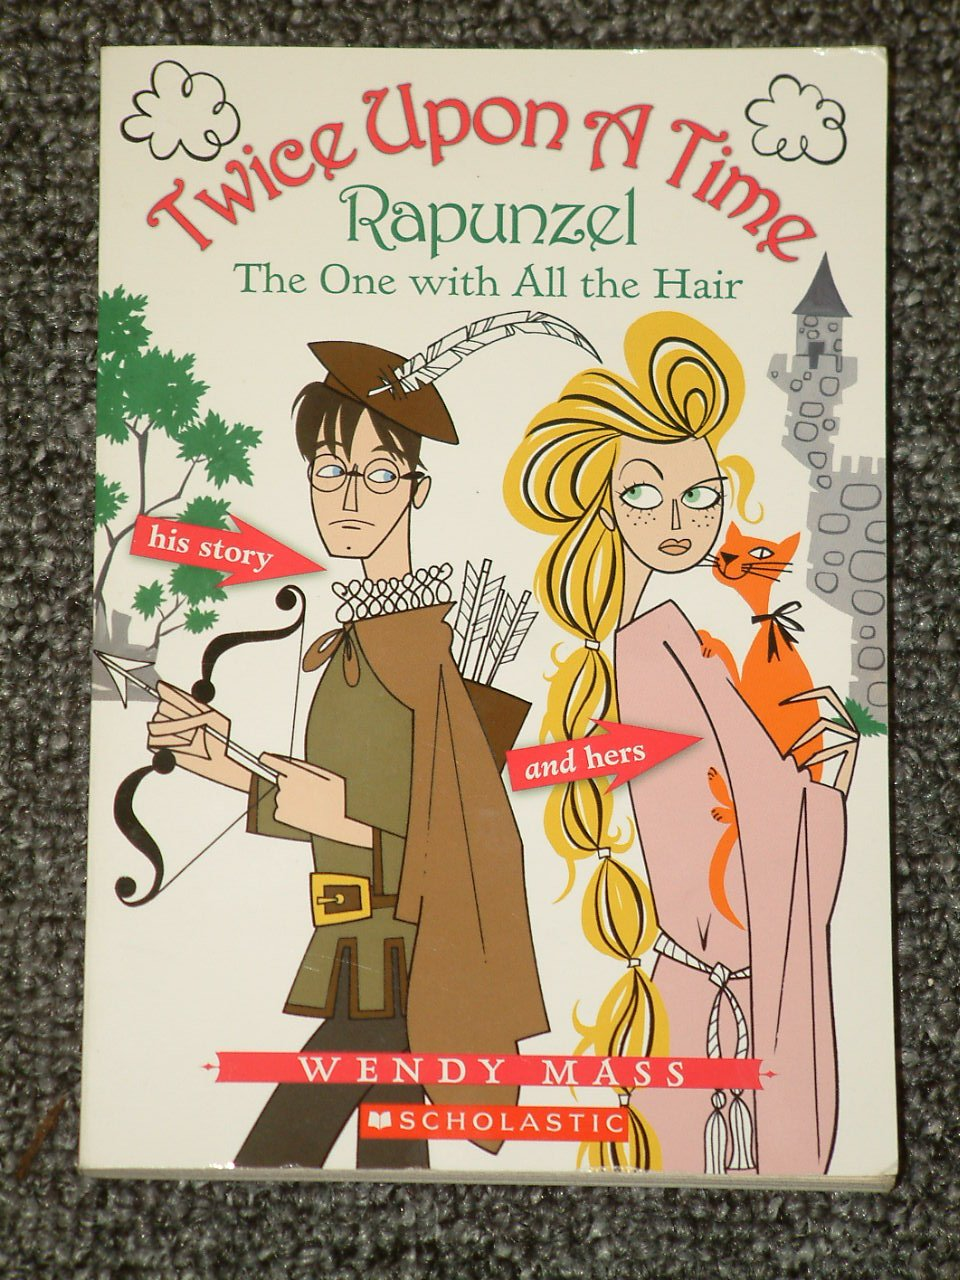 Twice Upon a Time Rapunzel The One with All the Hair by Wendy Mass